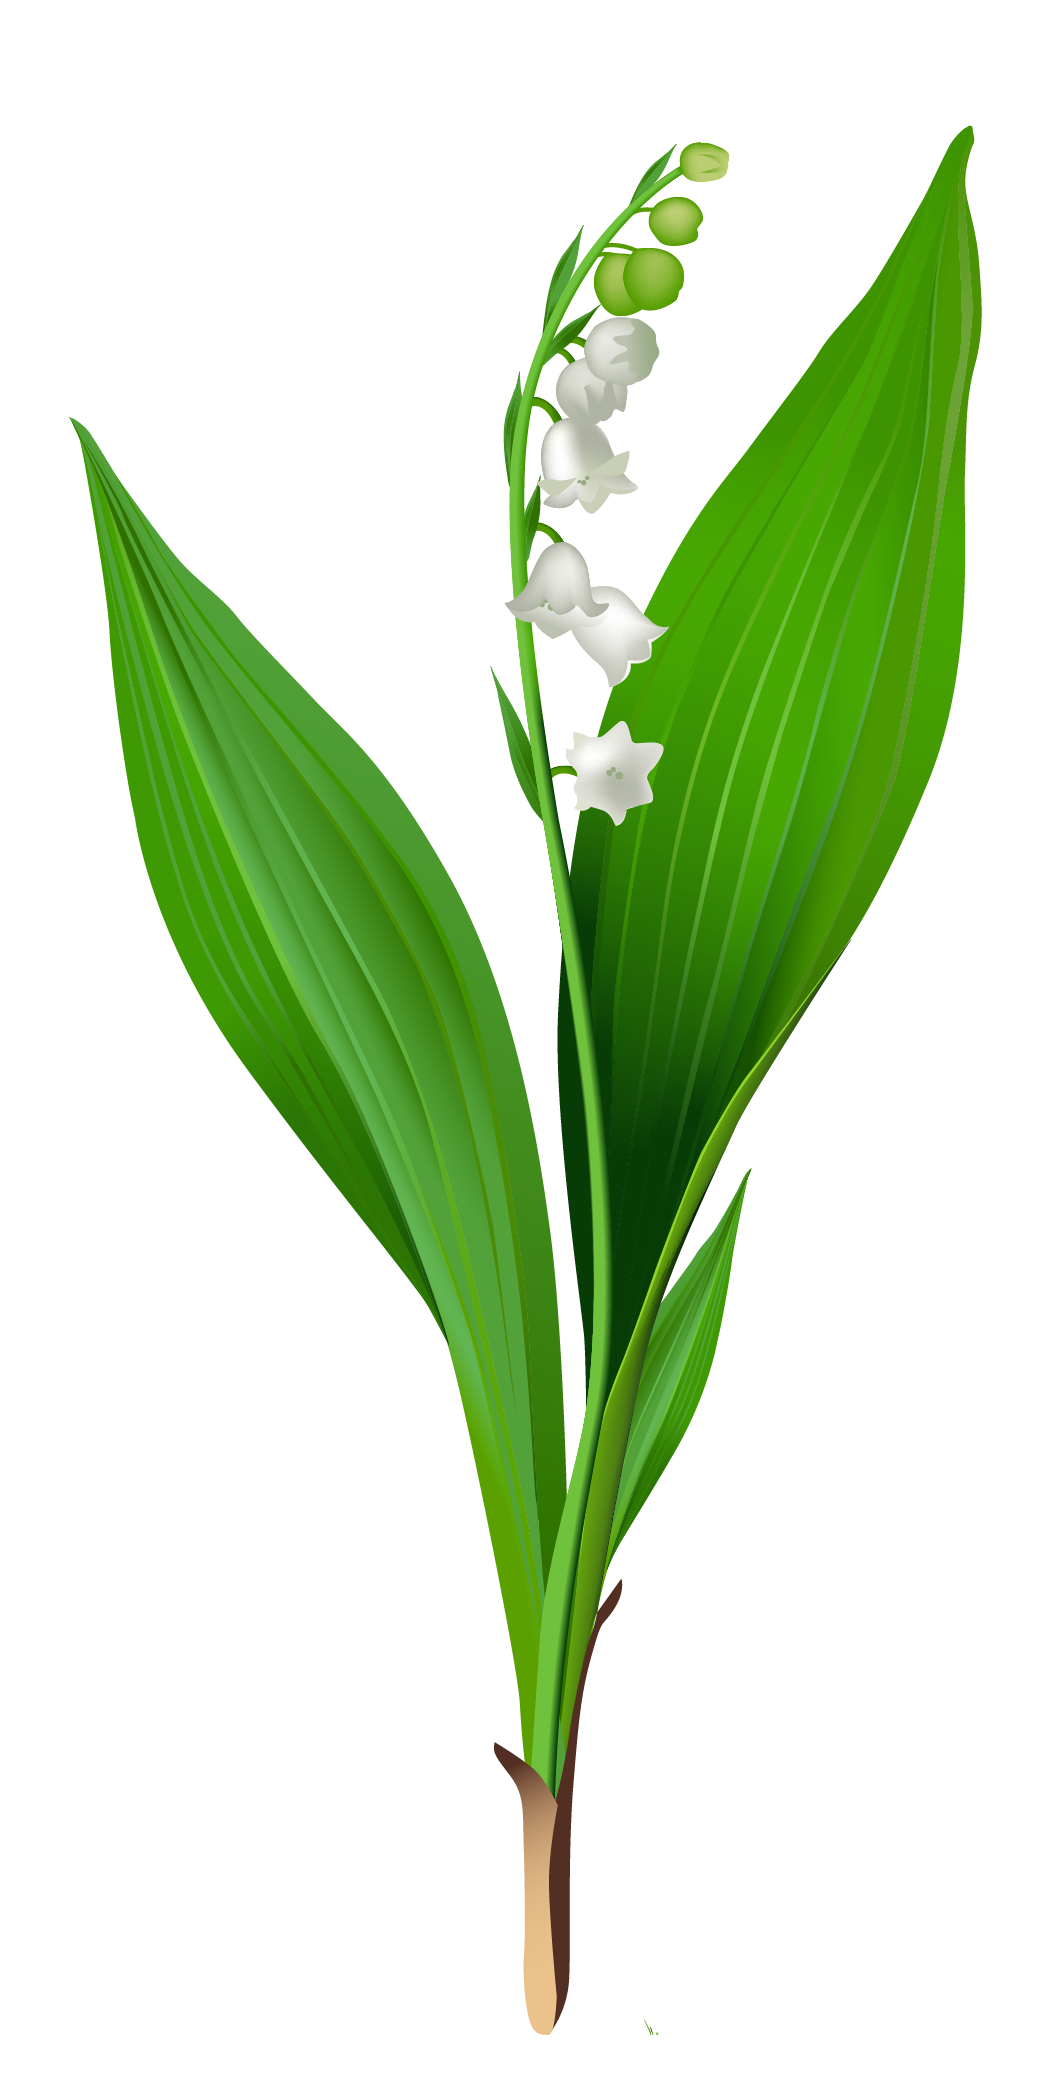 Lily Of The Valley clipart #1, Download drawings